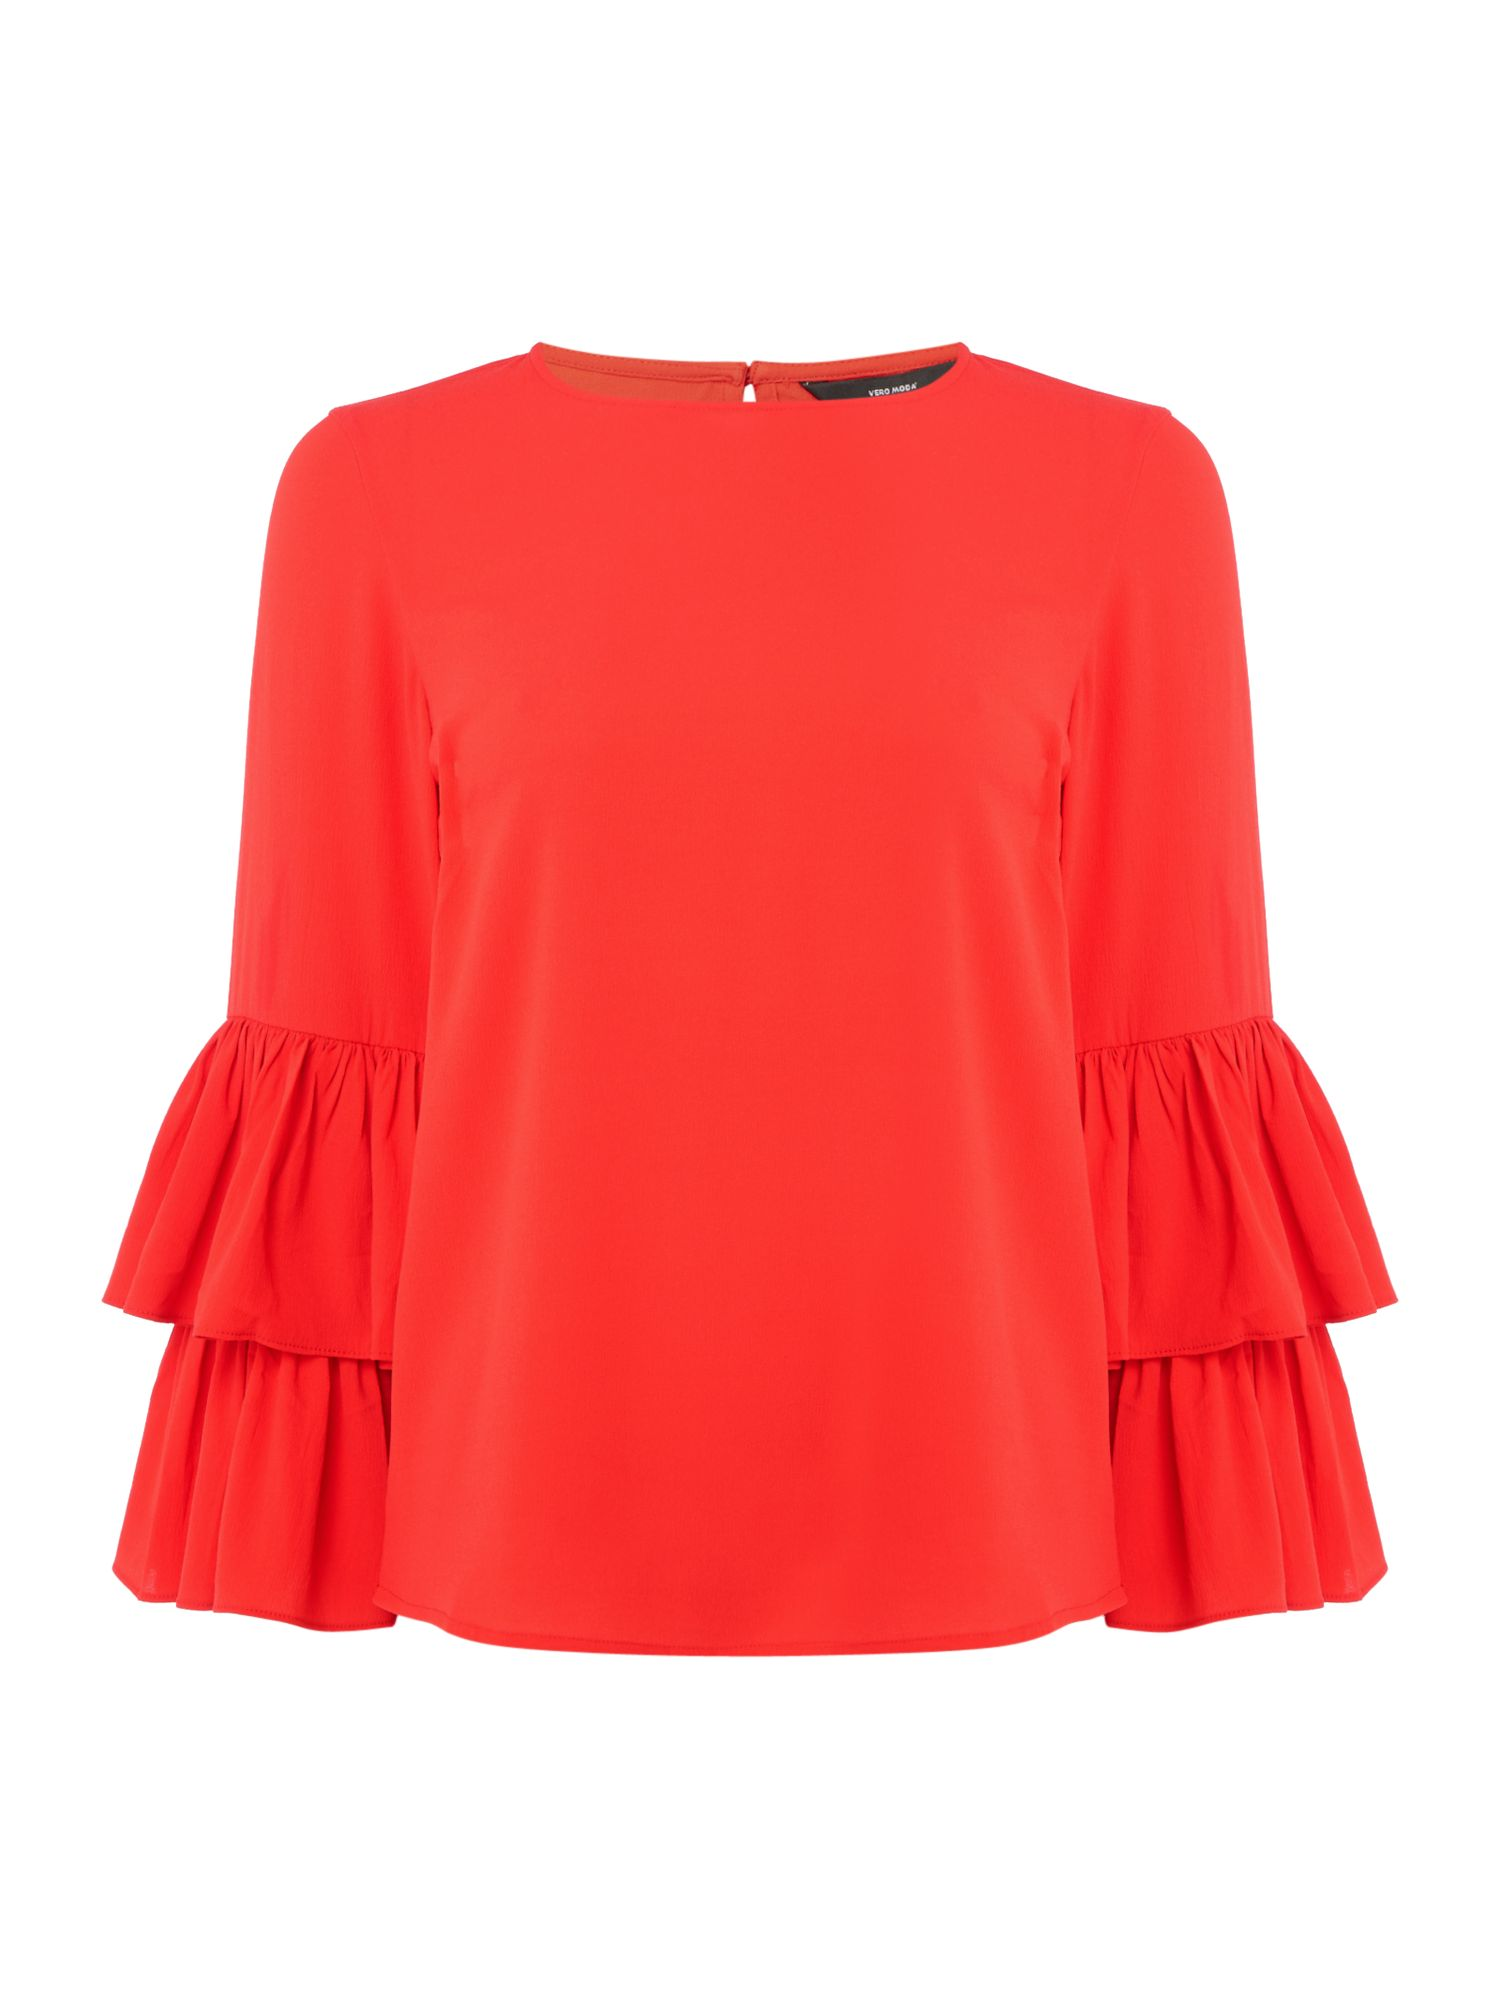 Vero Moda Long frill sleeve red top, Red